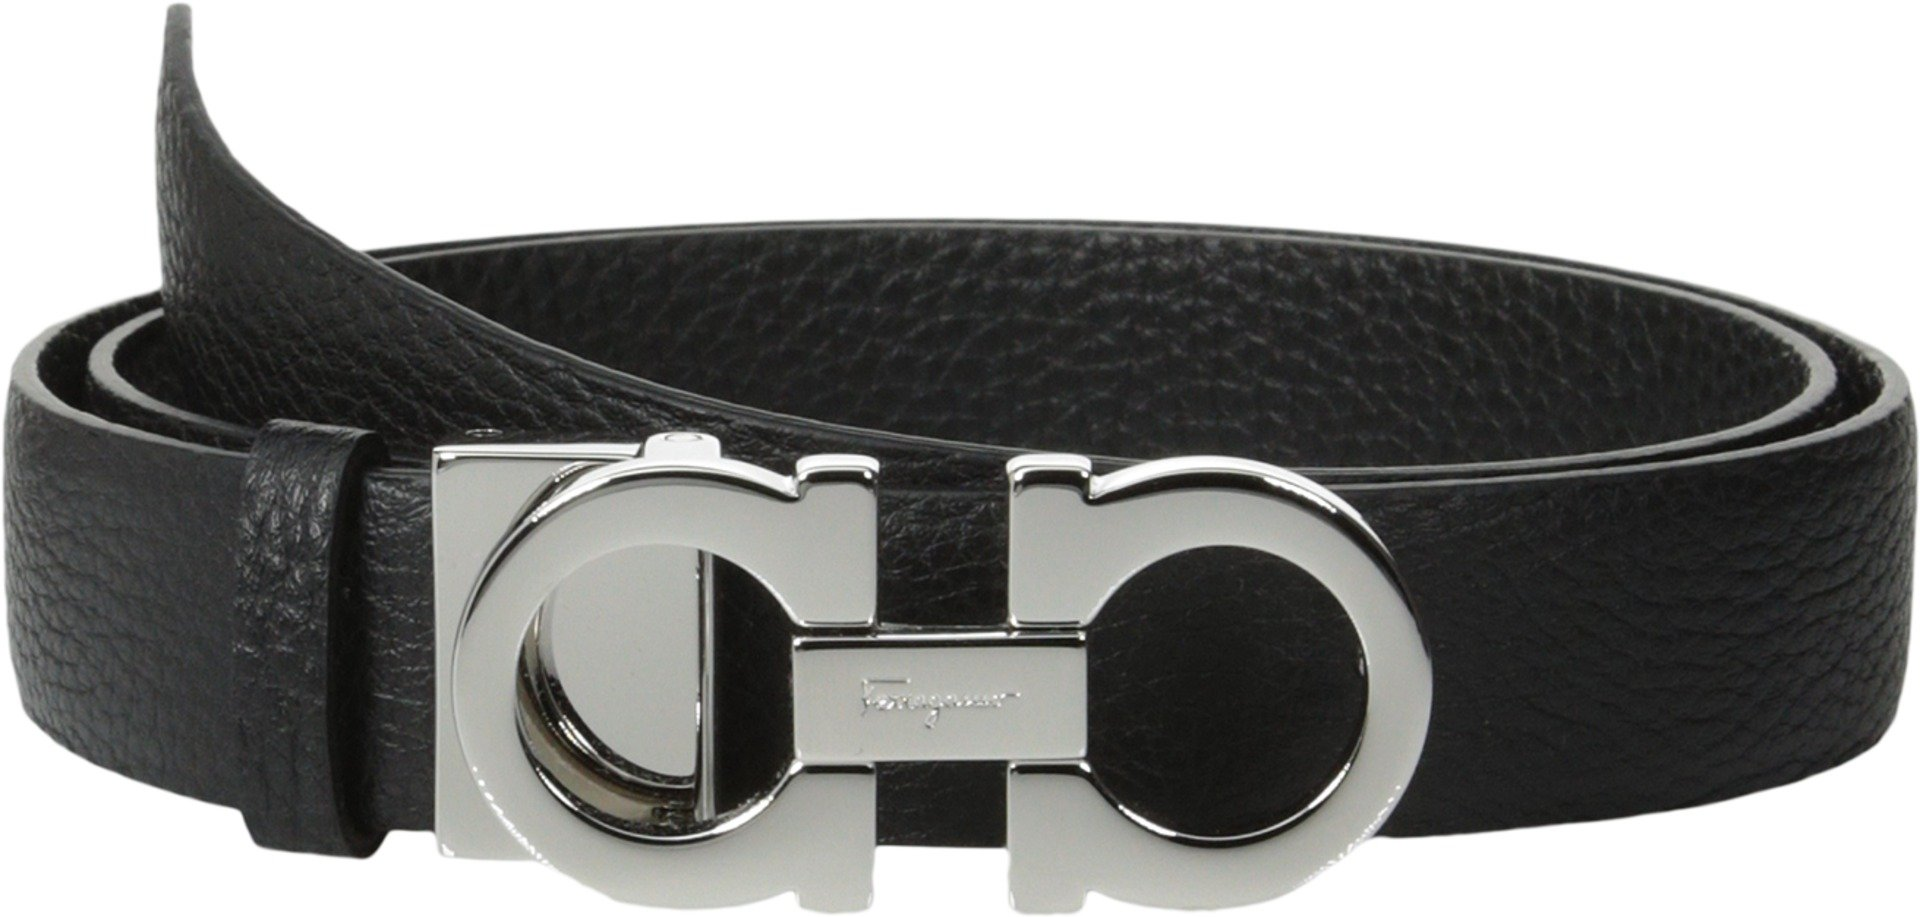 Salvatore Ferragamo Women's 237601 Double Gancini Wide Belt Nero 90 (36'' Waist) by Salvatore Ferragamo